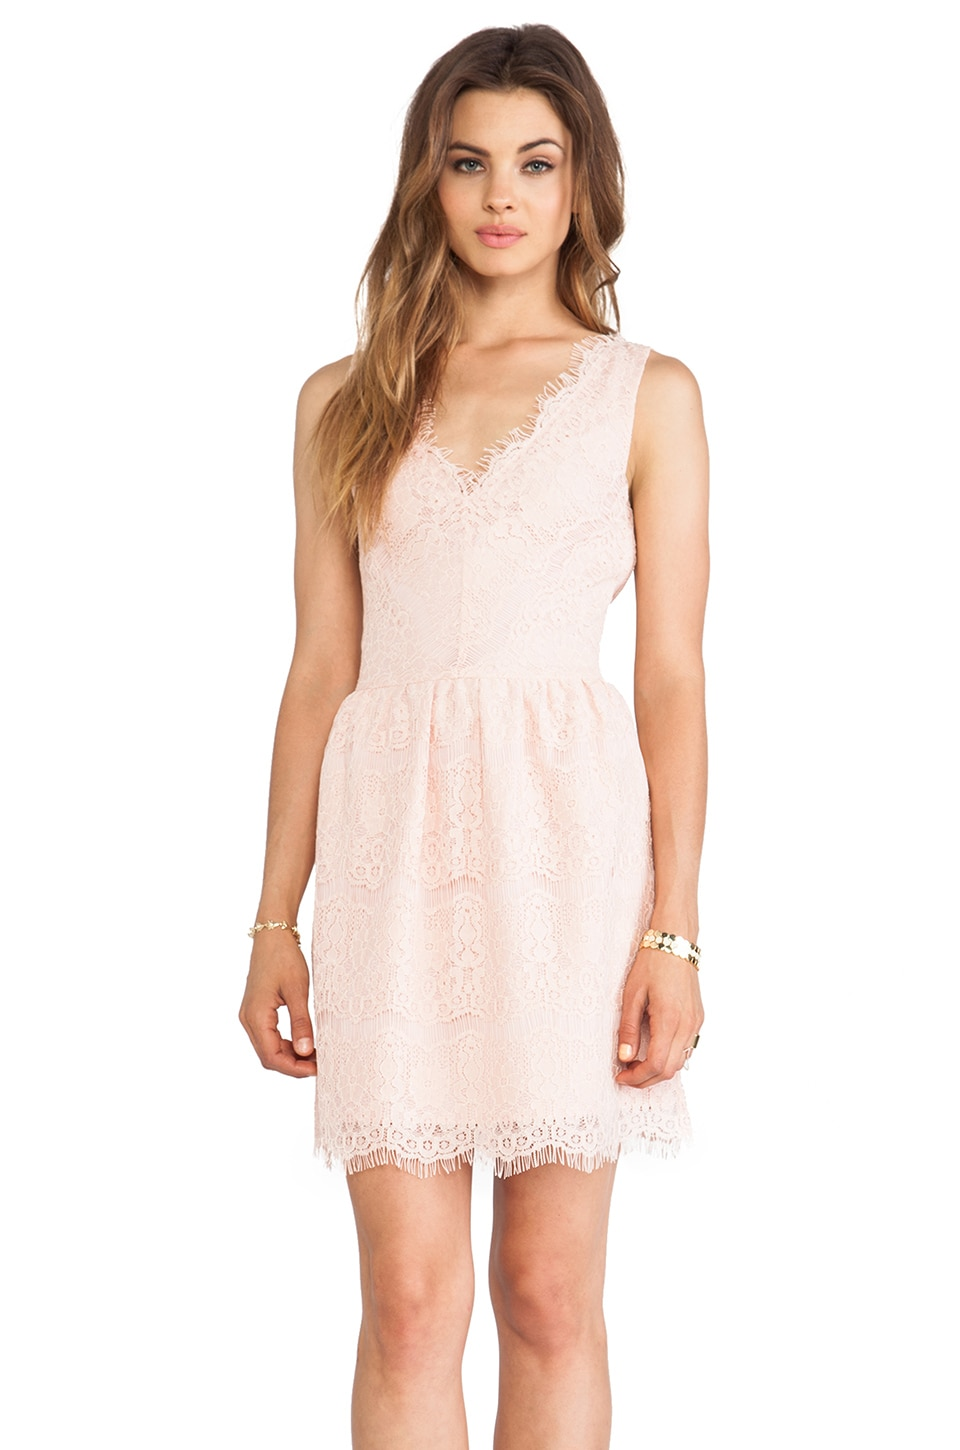 Dolce Vita Raidne Dress in Blush